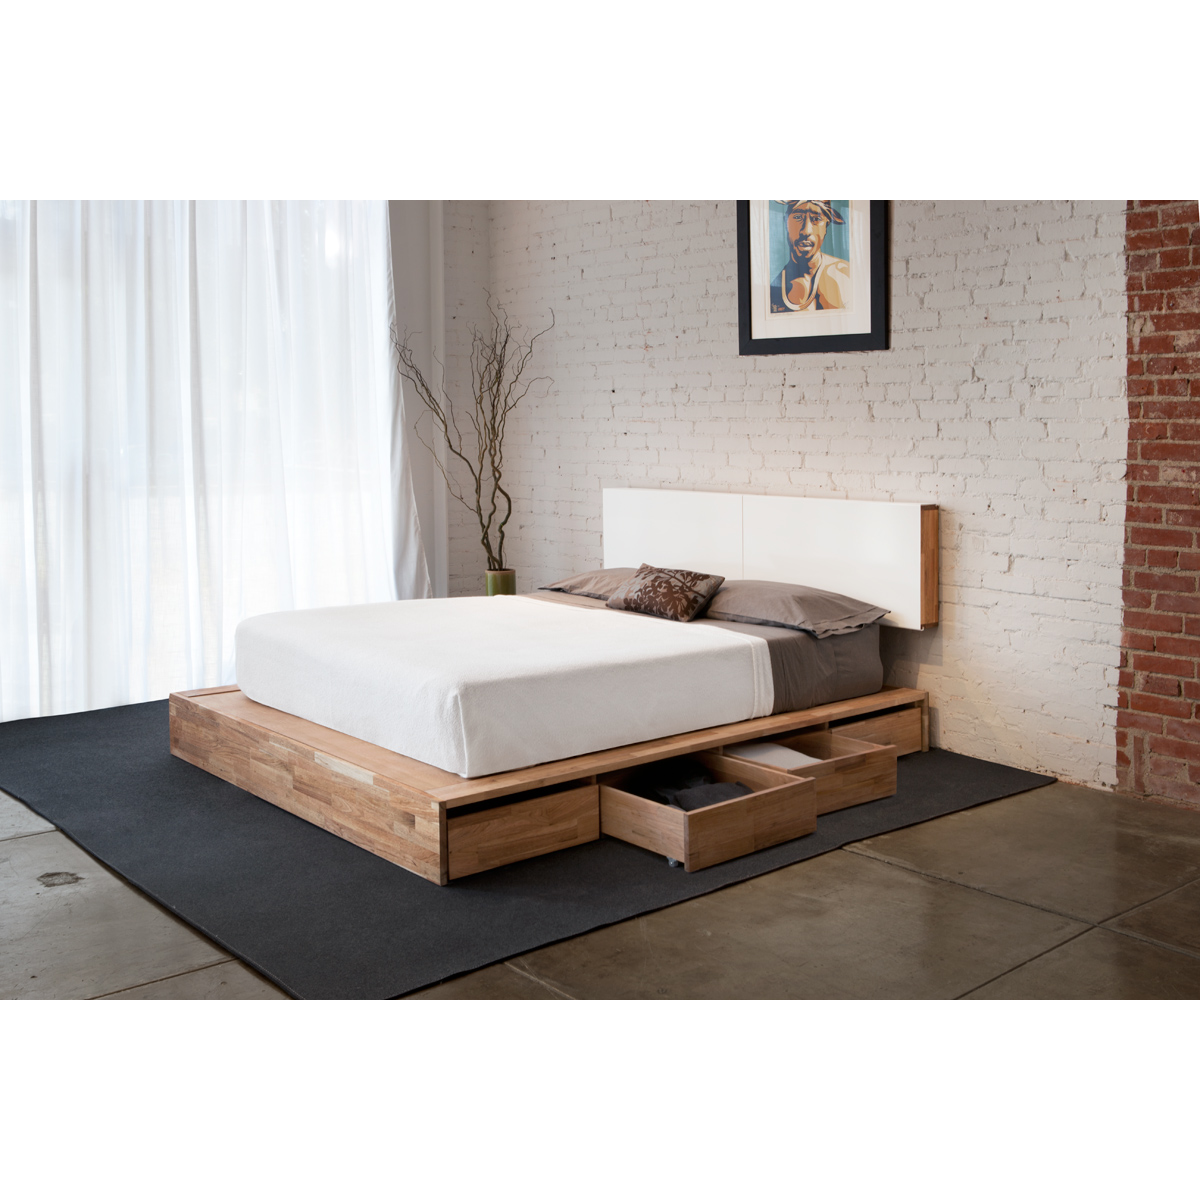 Ikea Betten Boxspring Full Bed Frame With Storage, A Smart Solution For Extra